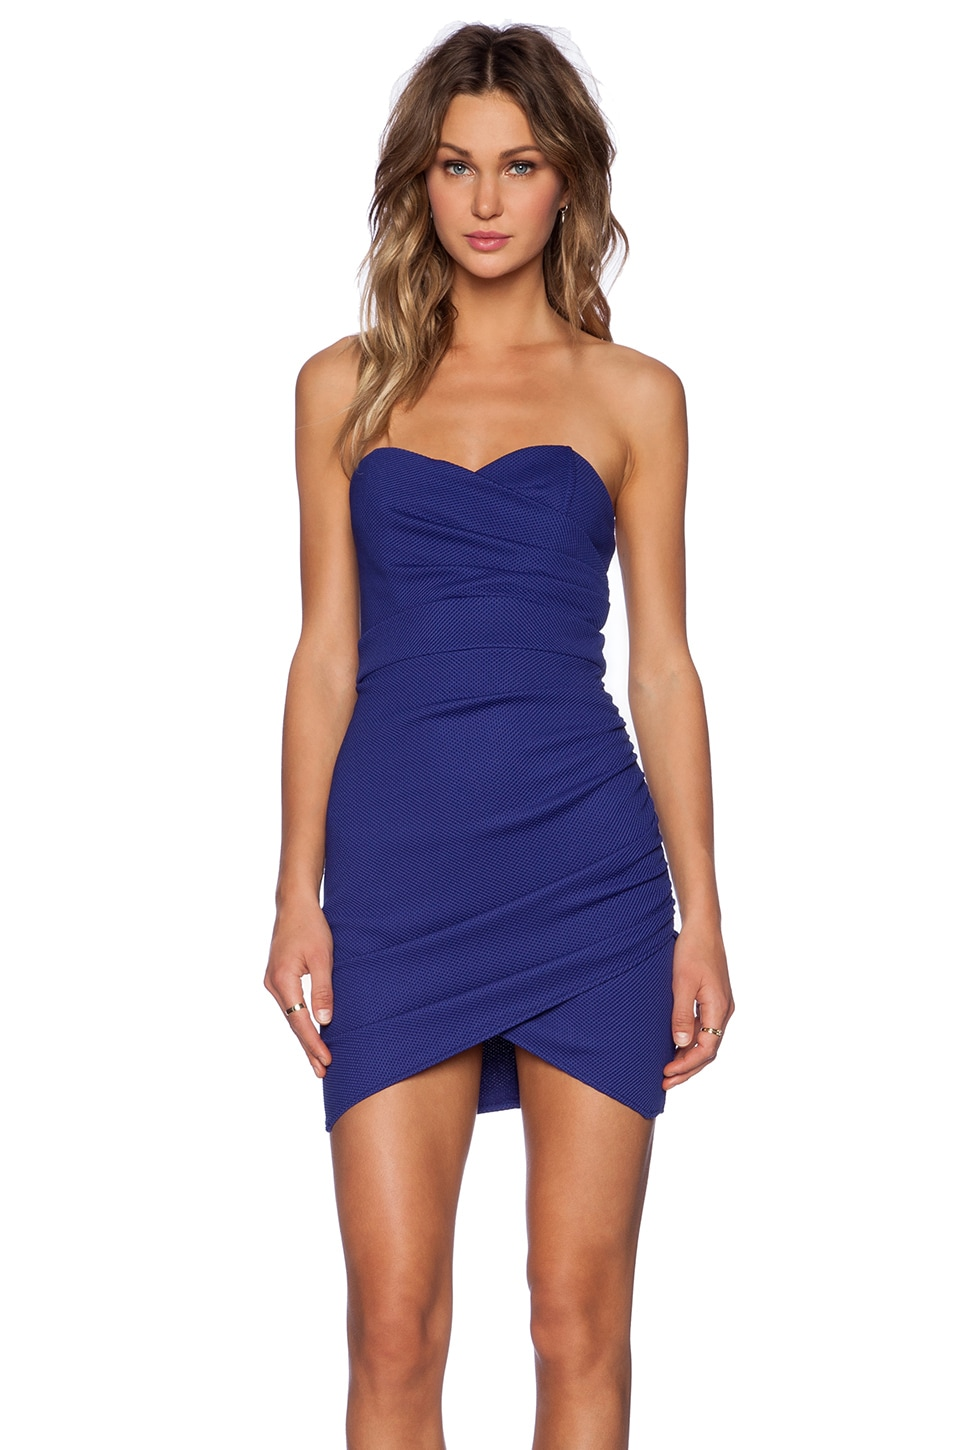 TFNC London Thai Mini Dress in Blue